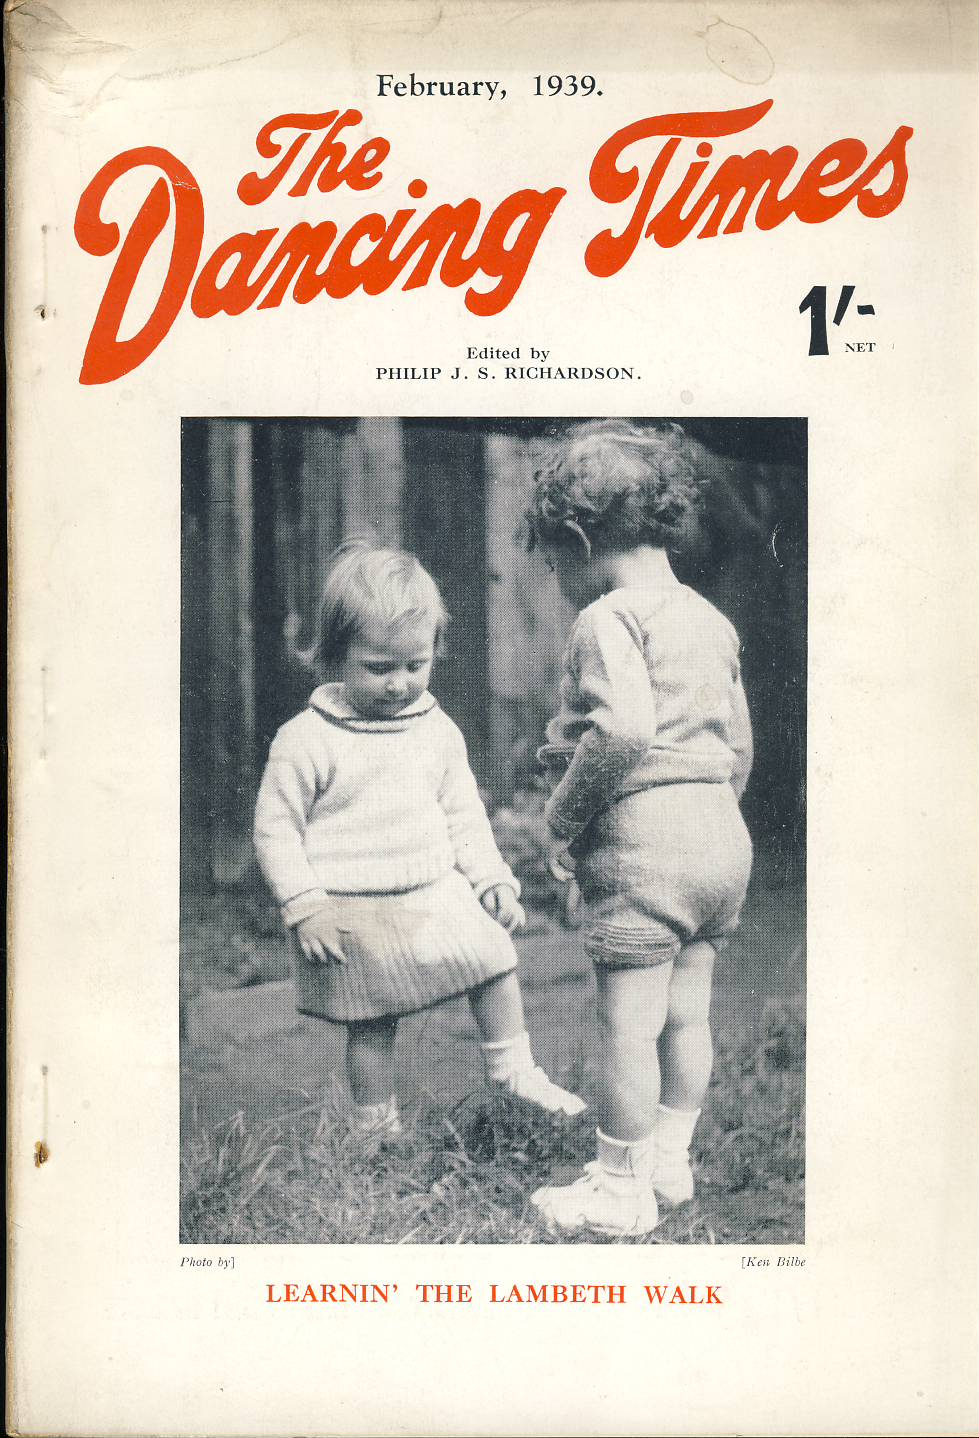 February 1939 The Dancing Times magazine Toddlers Learning the Lambeth Walk FREDDIE CARPENTER photo on inside front cover. A review of dancing in its many phases - containing articles and photos. Some vintage adverts for dancing schools. This is a vintage magazine. Text and photos clean and bright inside. The covers are badly marked with scuffs and tears to spines. Staples rusting so cover coming away from text. Please read the full description and see photo.